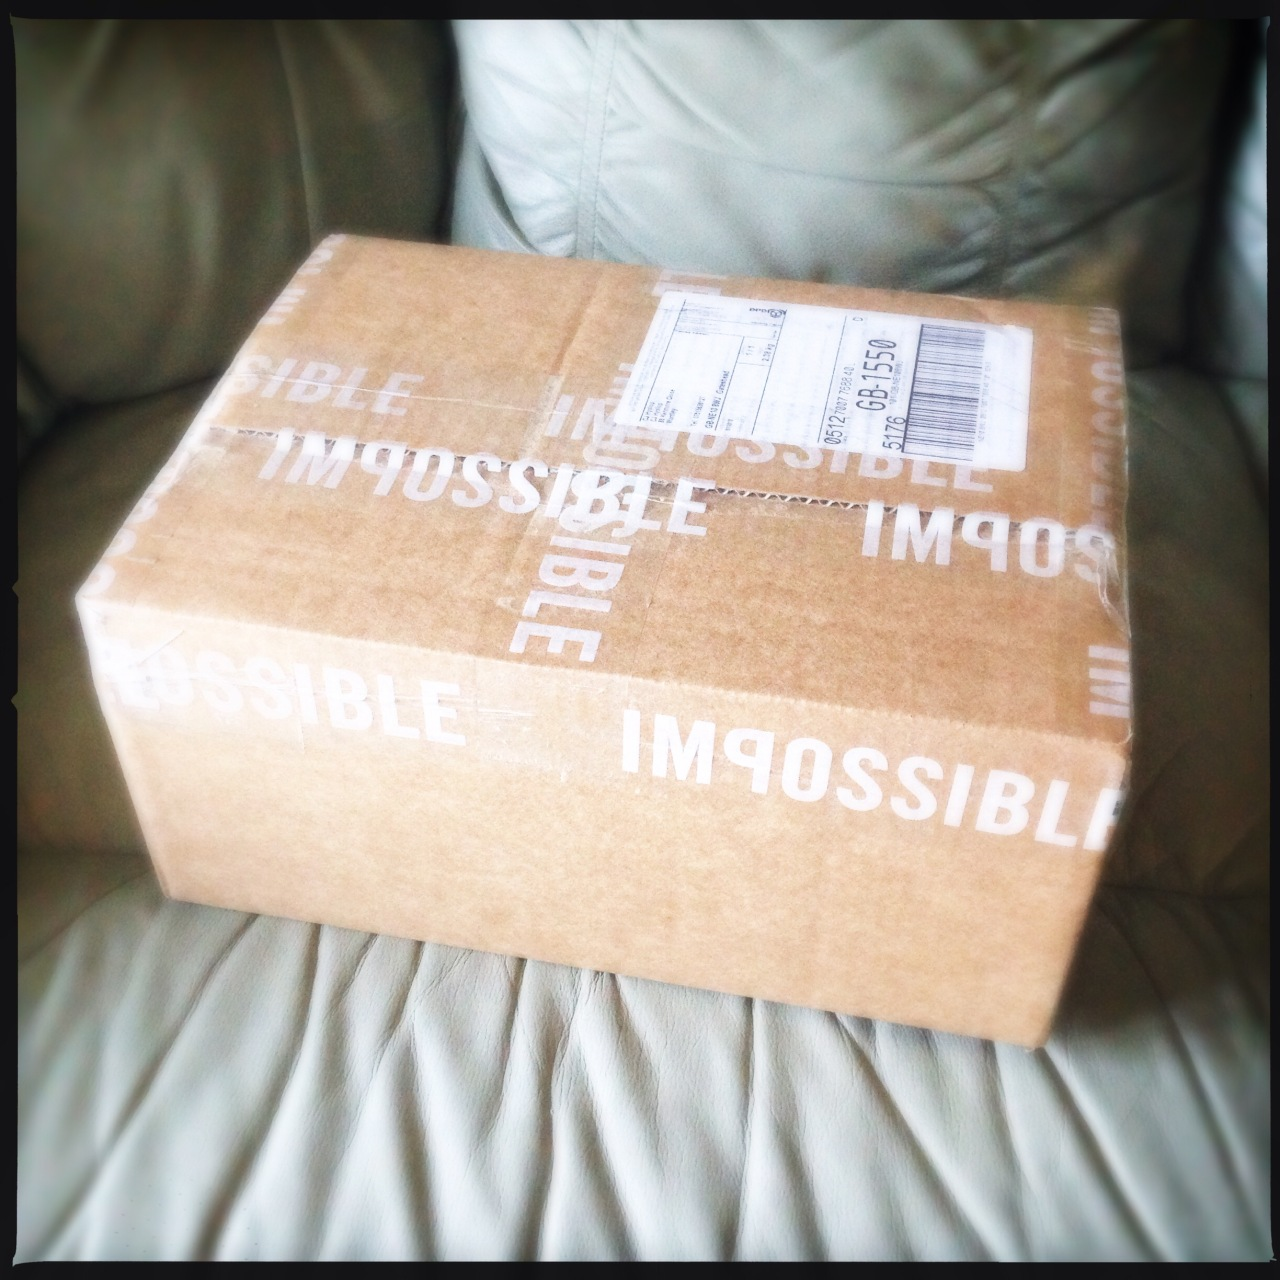 wonder what it is? :)